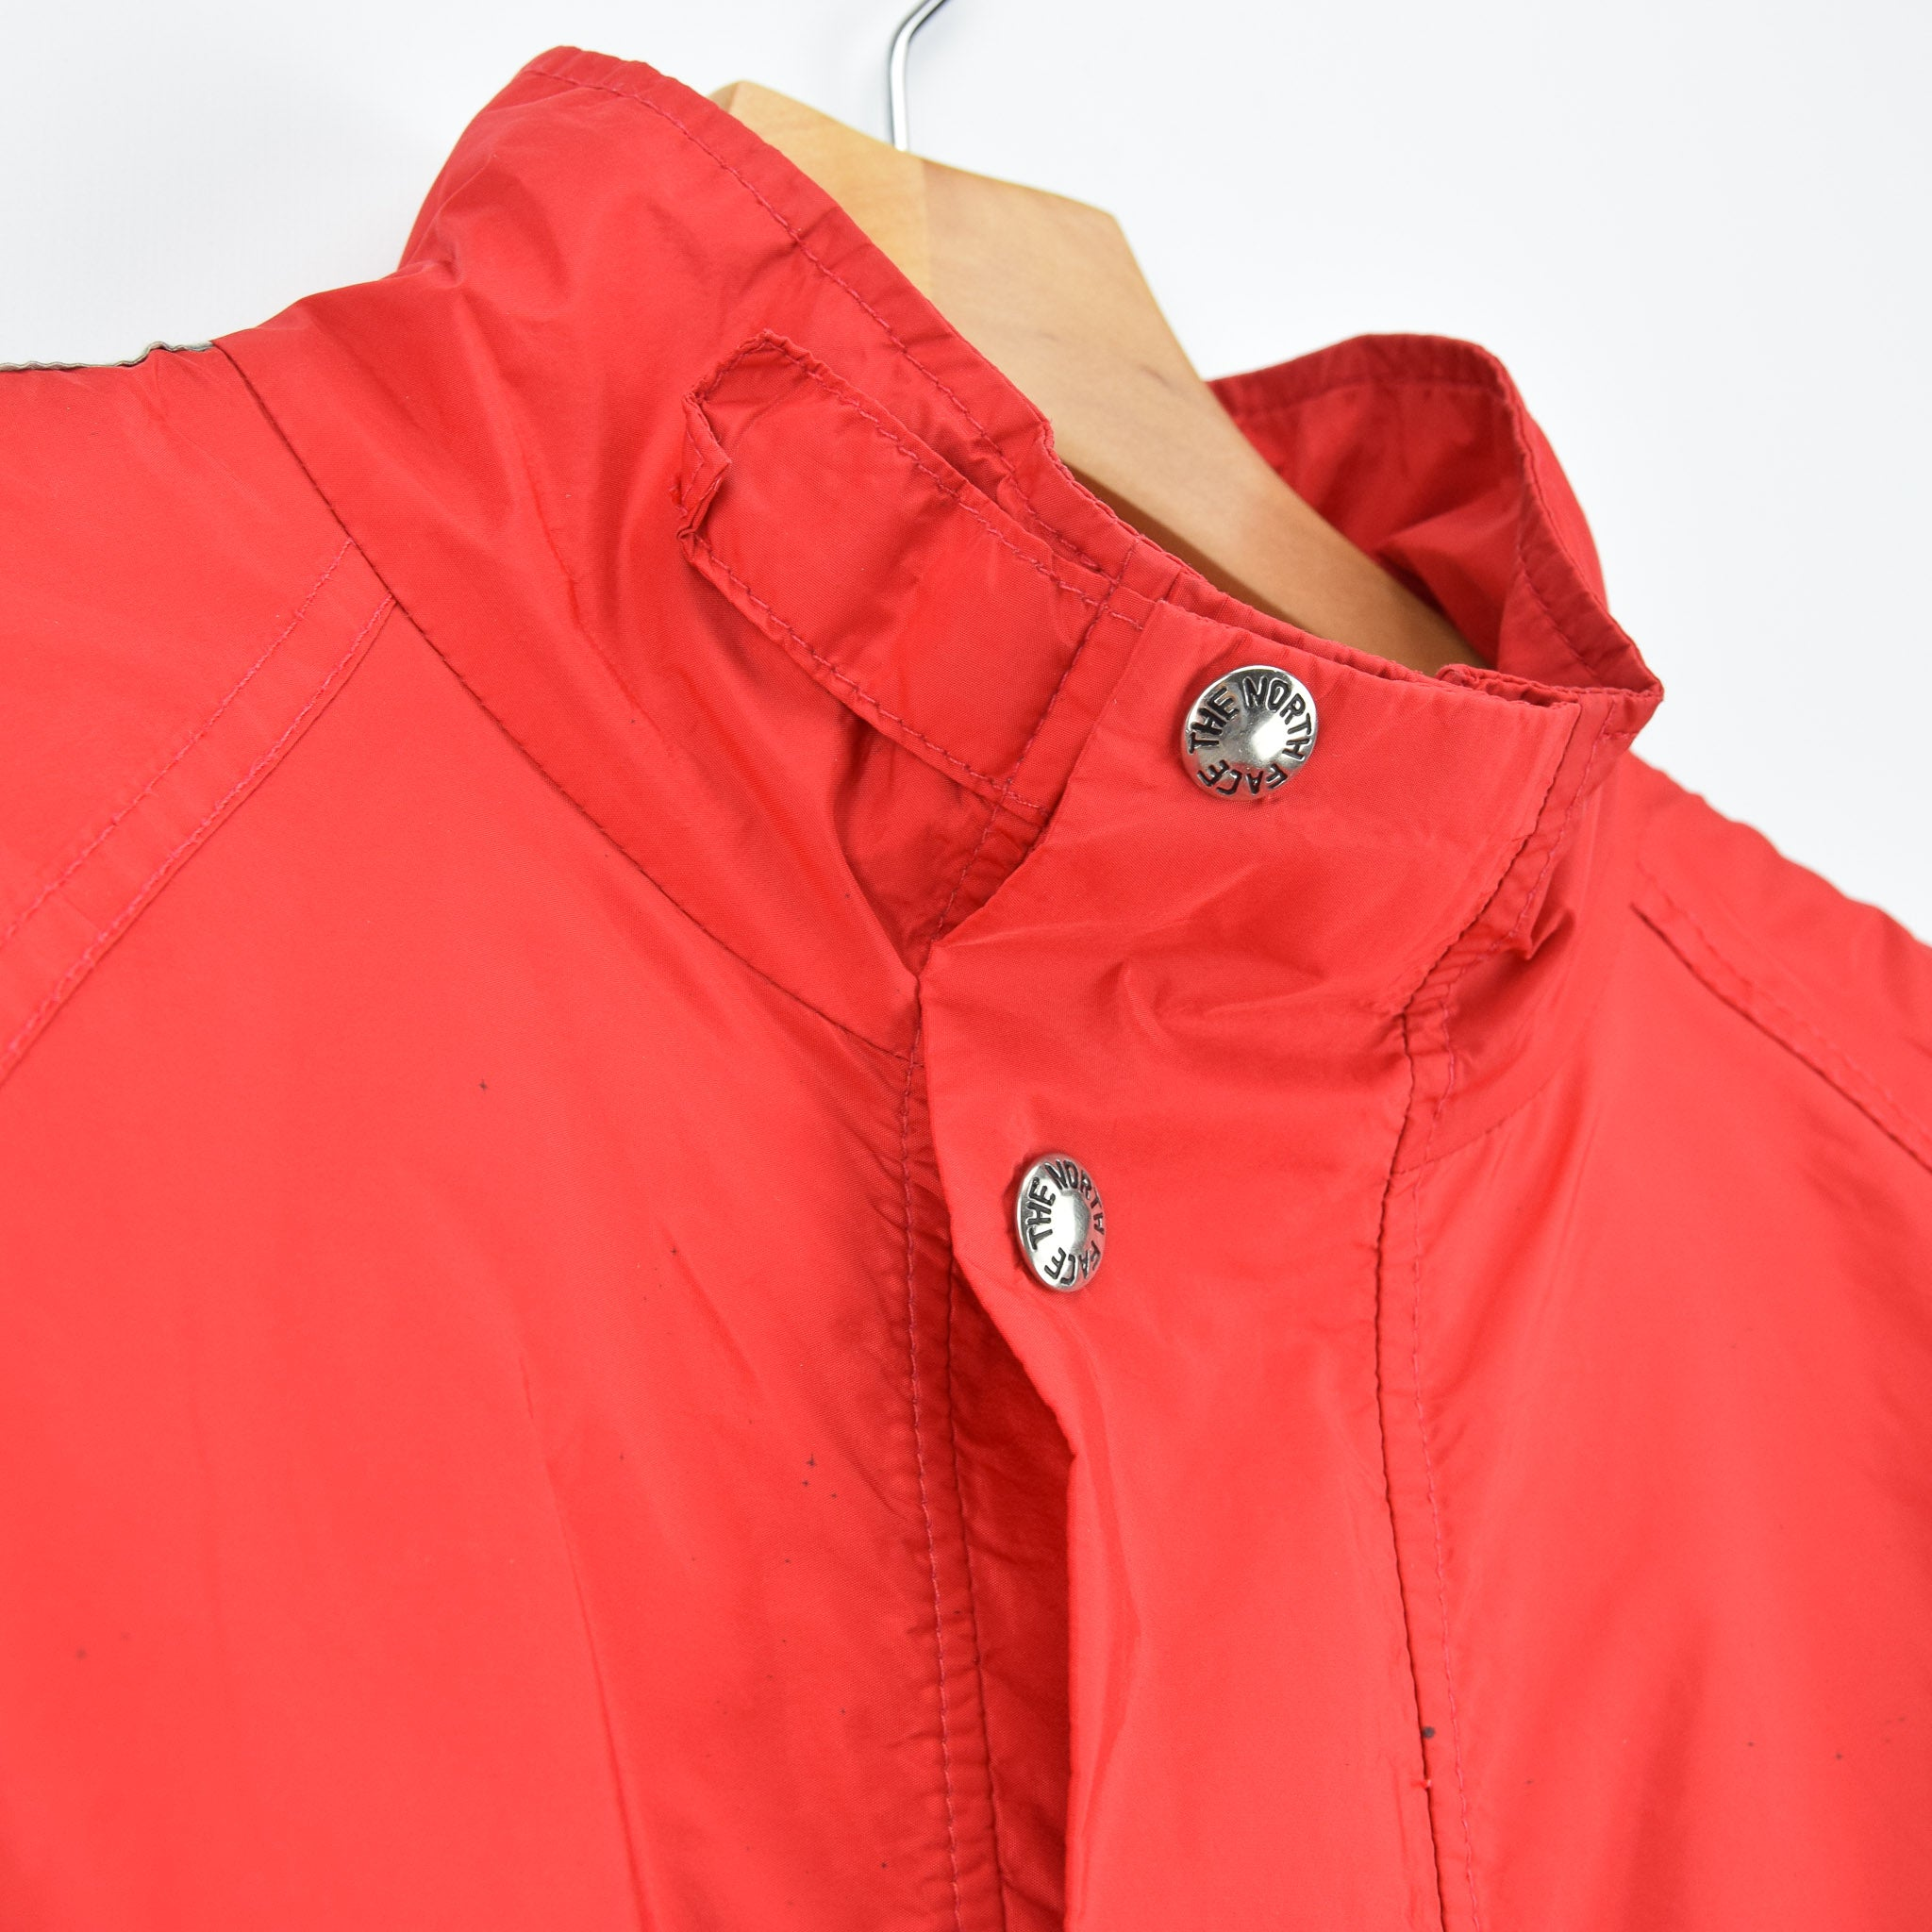 Vintage North Face Red Goretex Velo Biker Jacket Made in USA M collar